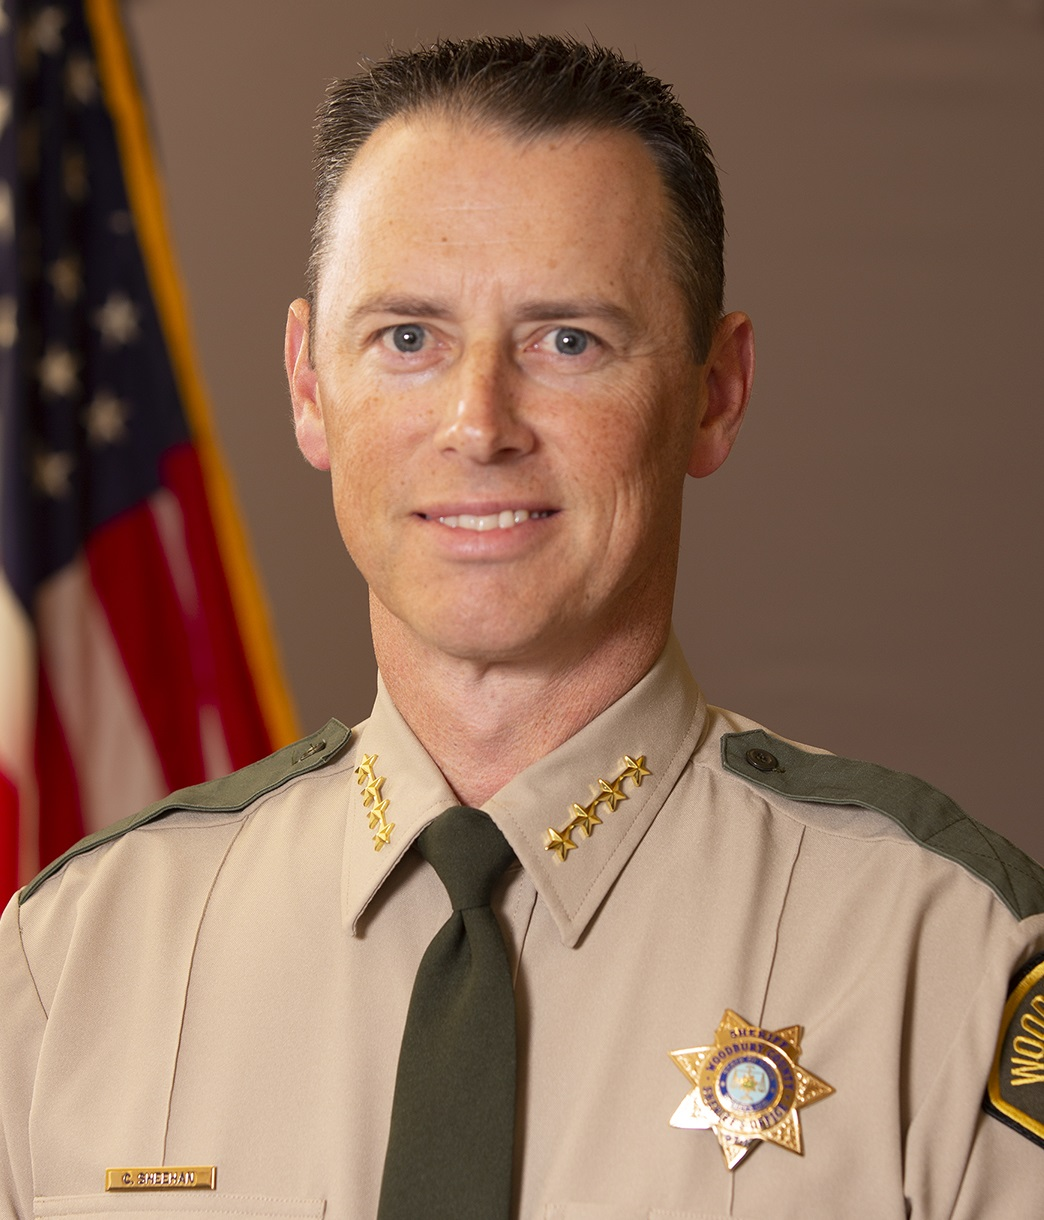 Sheriff Chad Sheehan